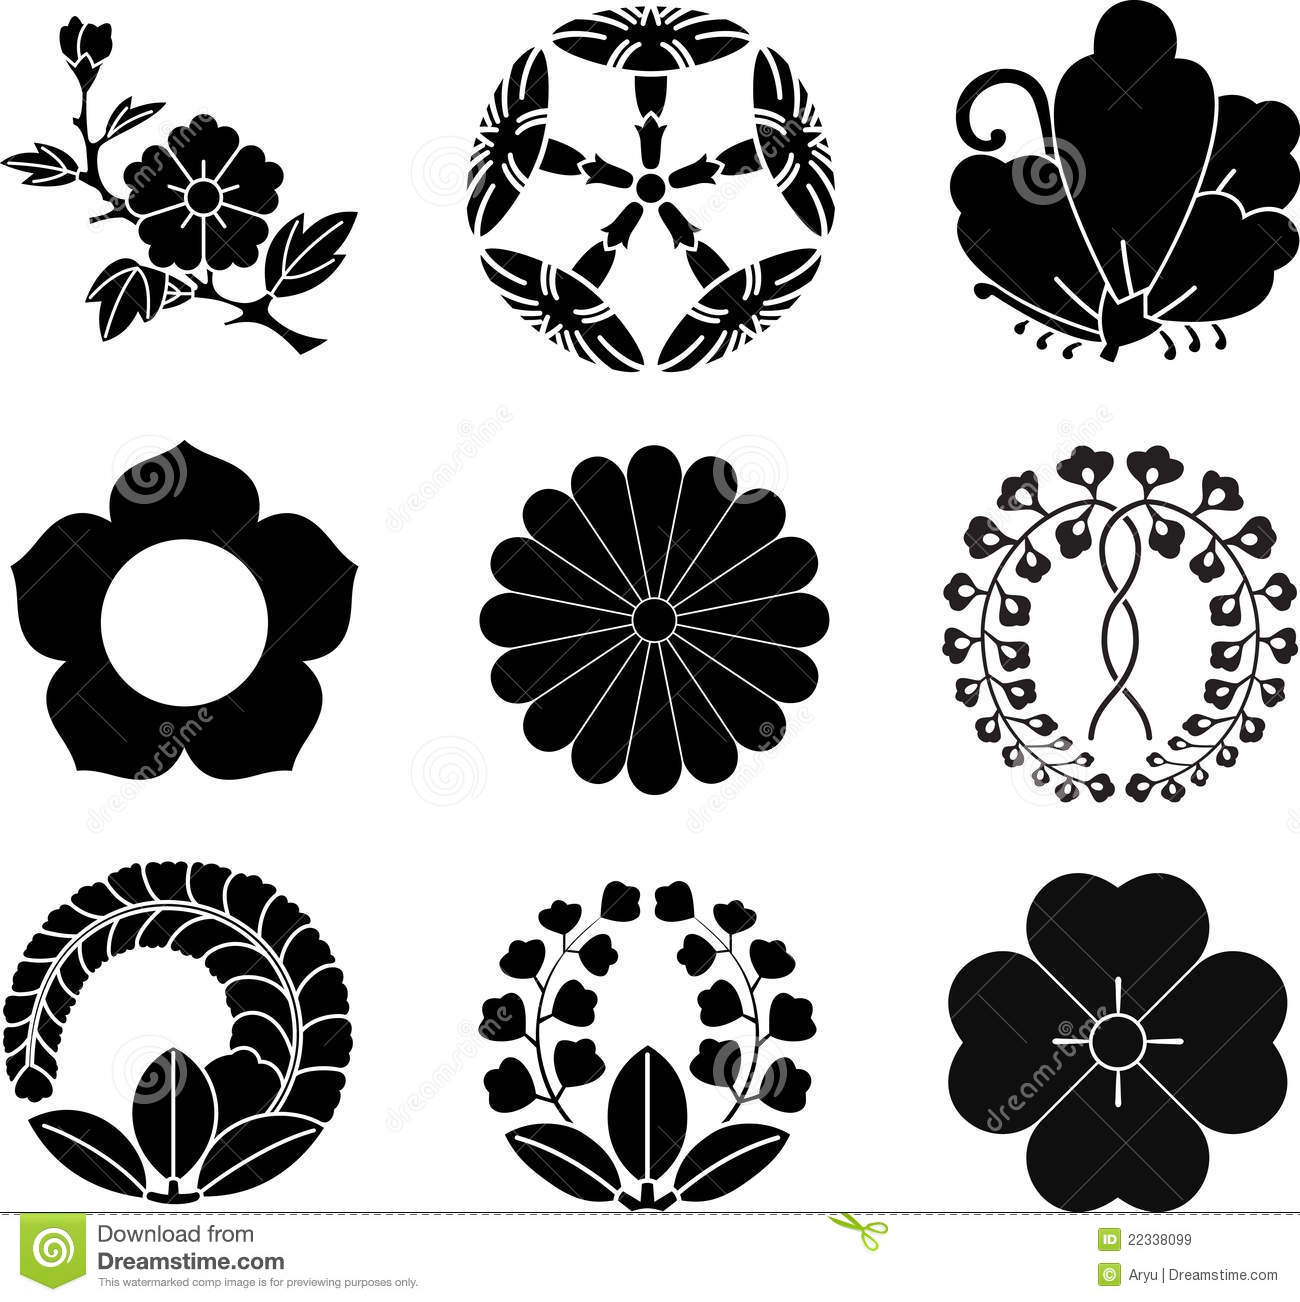 Japanese Family Crests Stock Vector Illustration Of Japanese 22338099